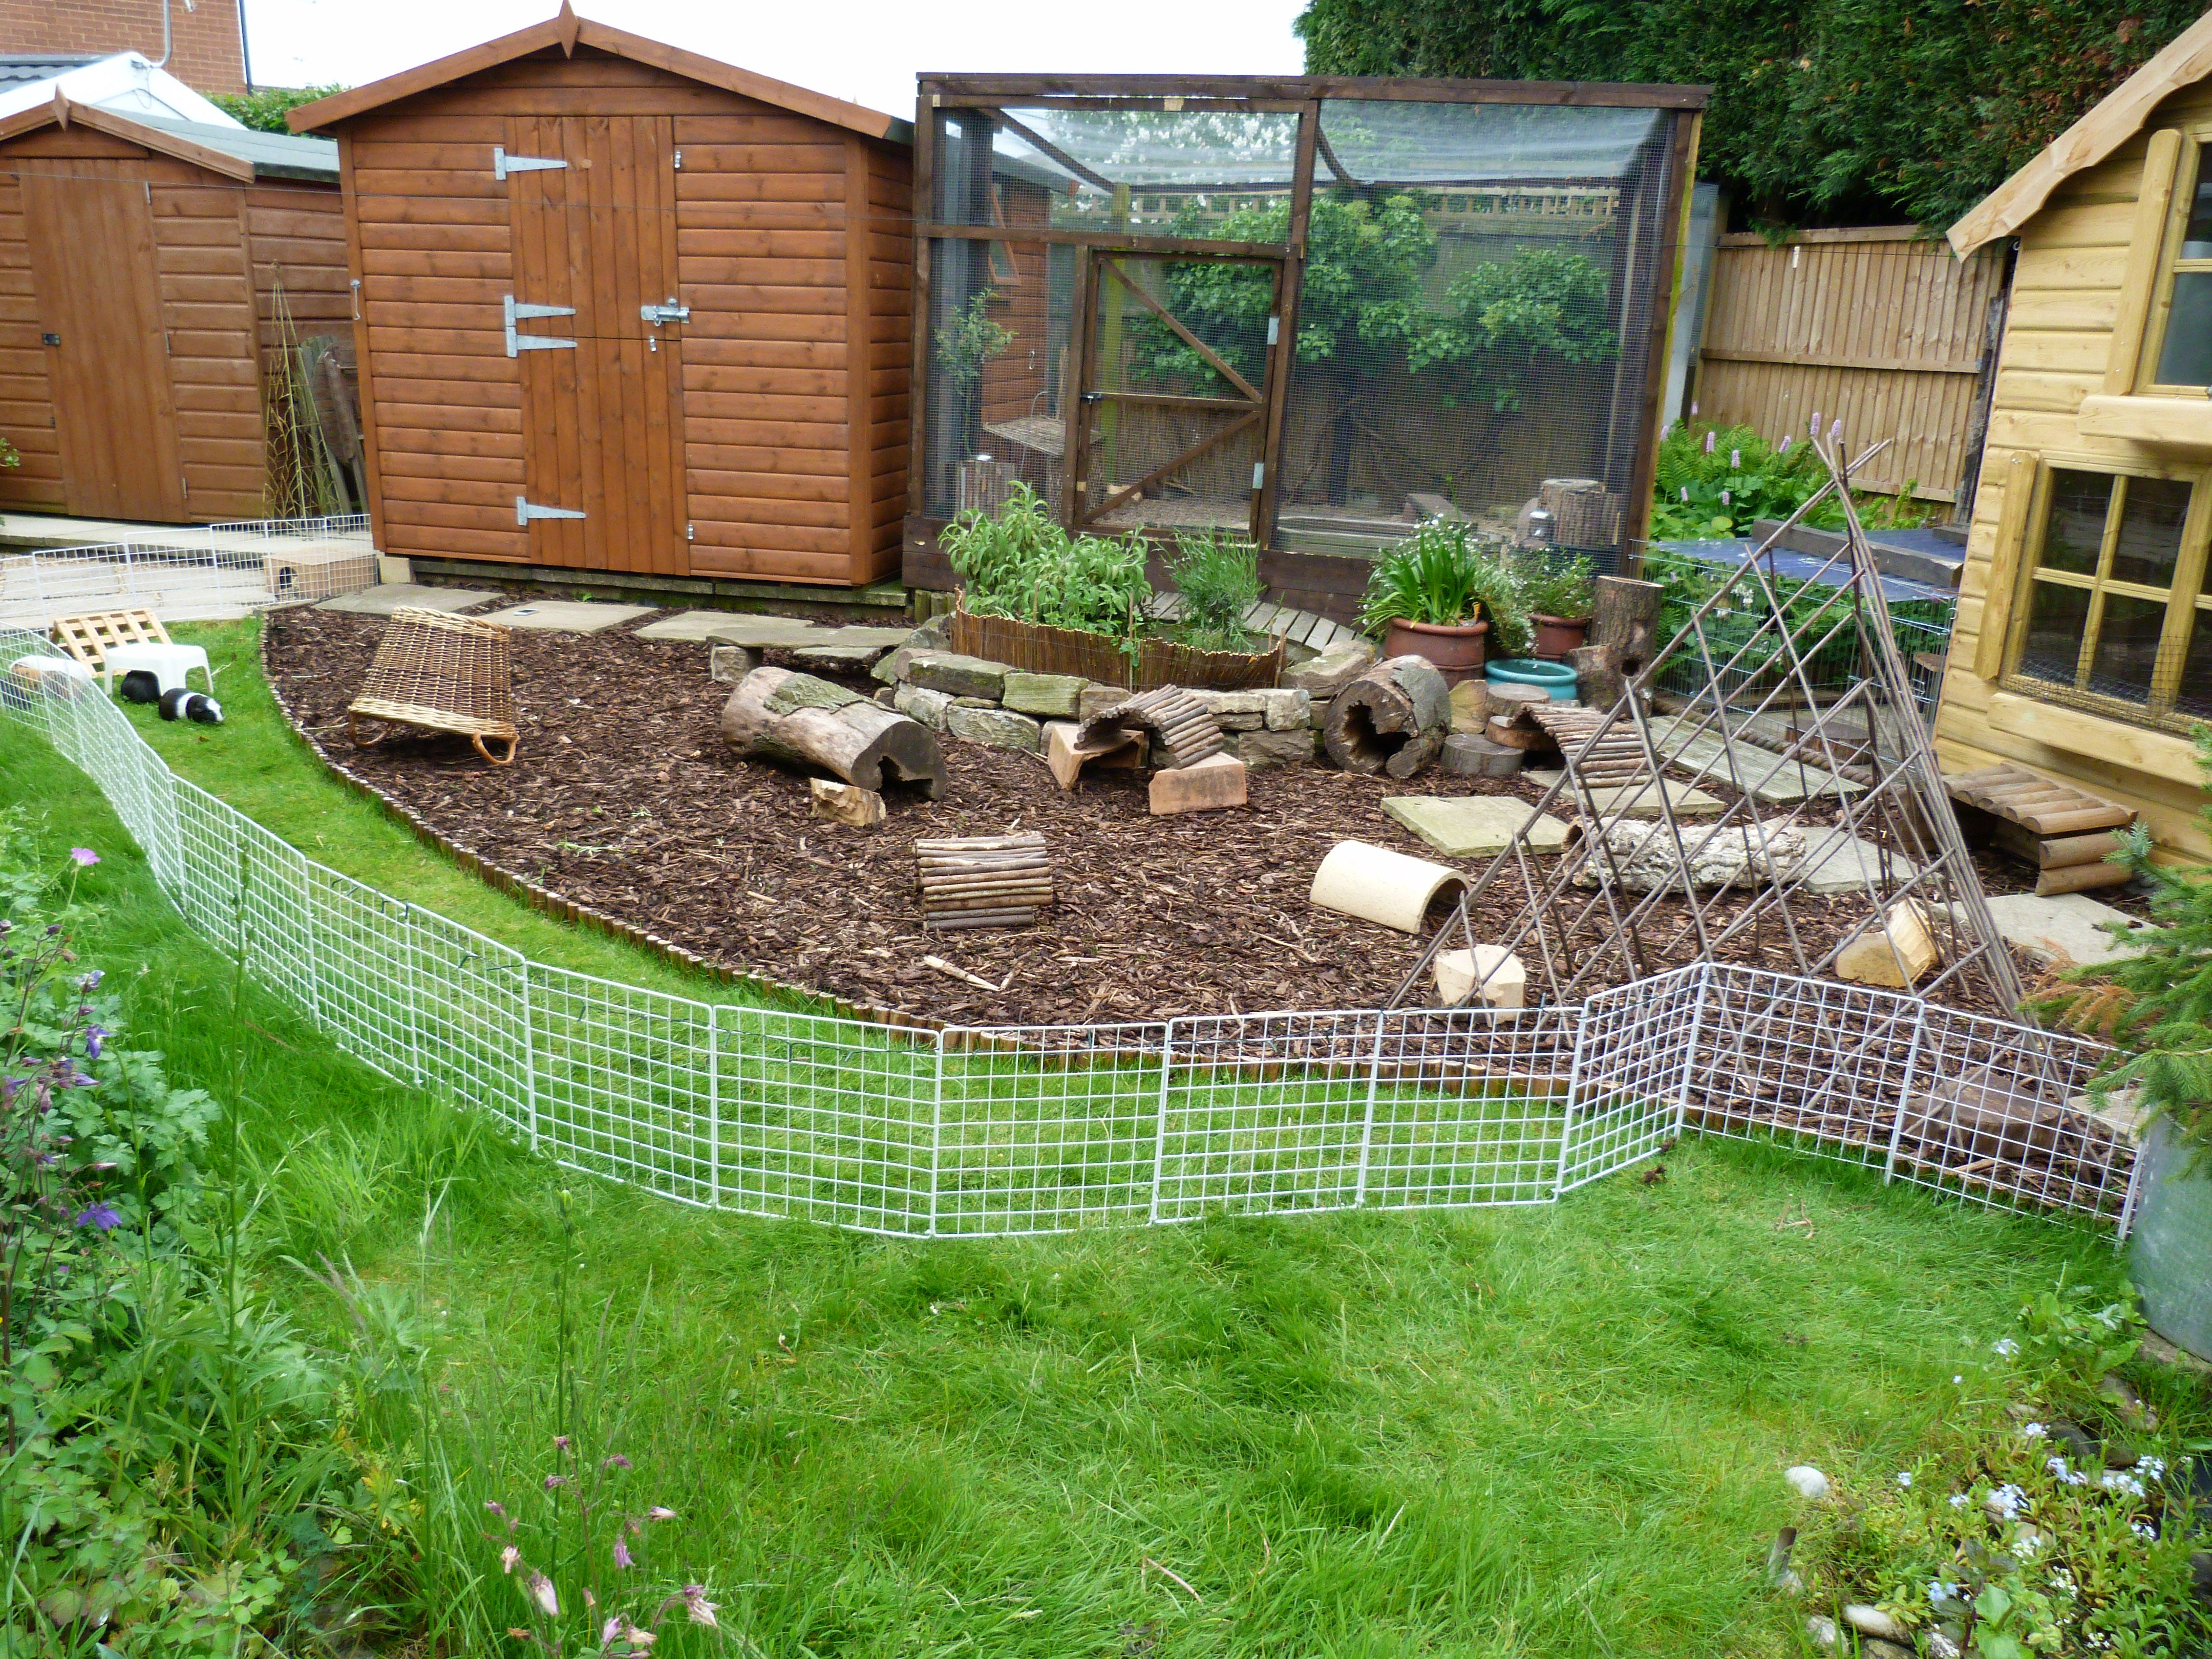 Here Is My Guinea Pigs Outdoor Area They Come Out Each Day To Exercise Explore And Graze On The Gr